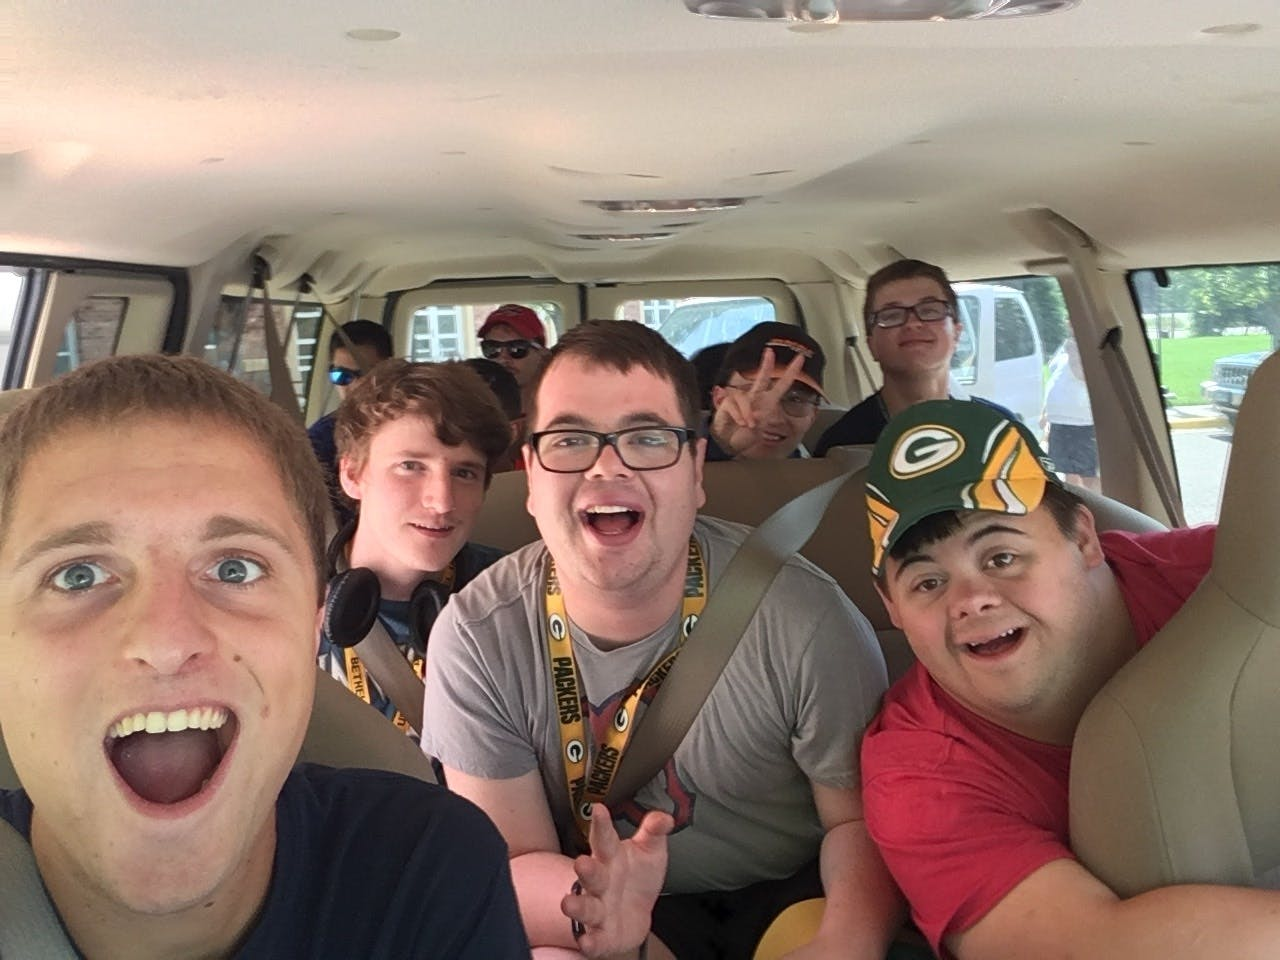 Brady Tongen '20 is a mentor in Bethel's BUILD program. Here he's shown with students in the program, on a field trip.